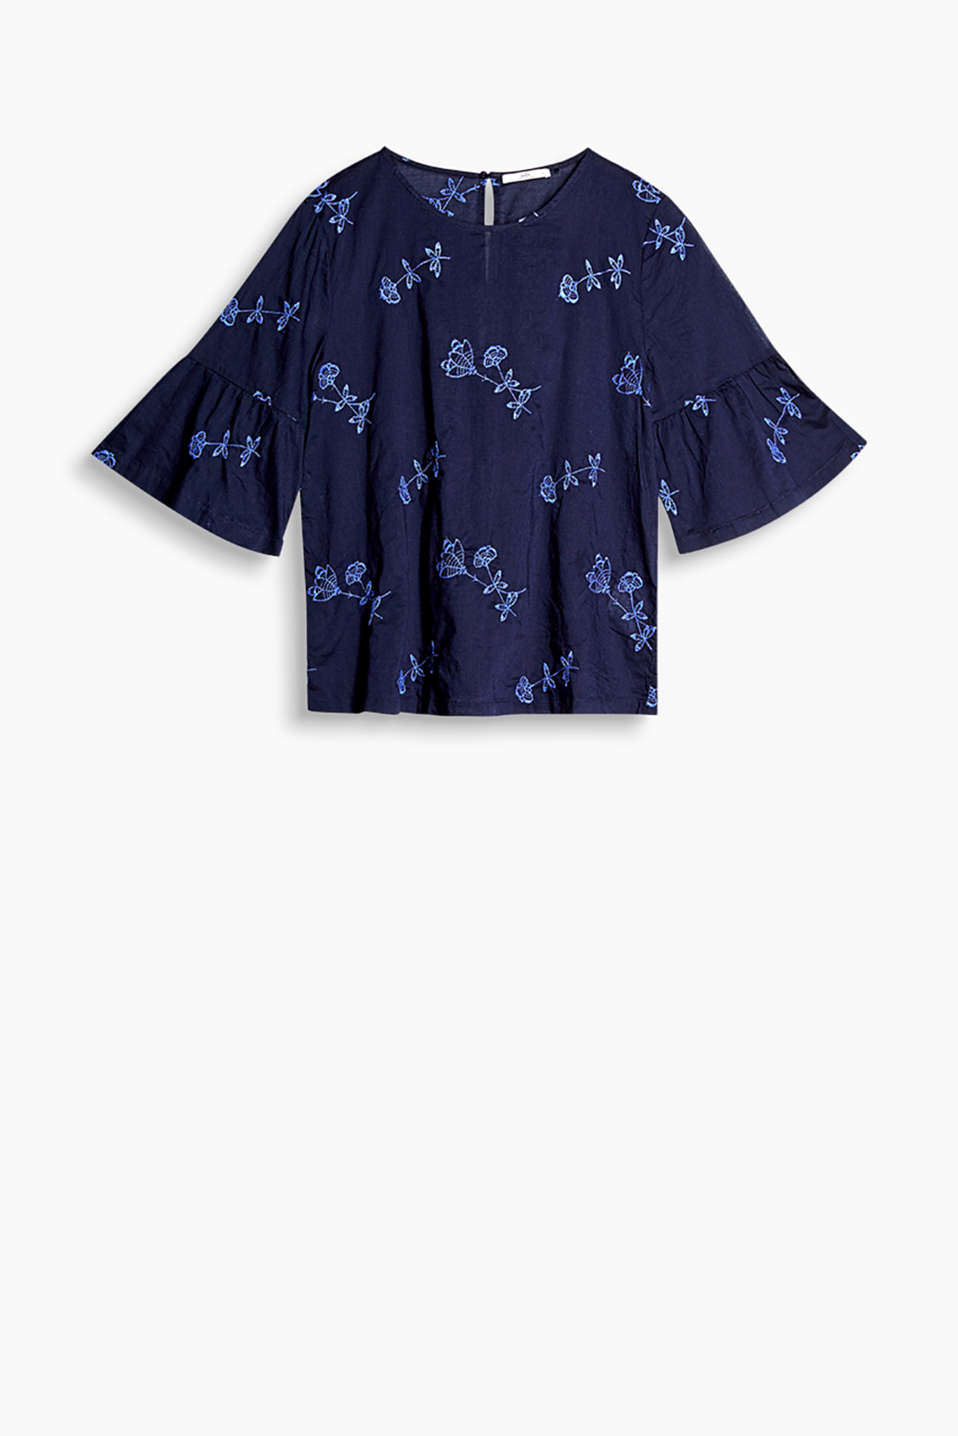 Blouse with floral embroidery and flounce sleeves, in pure cotton